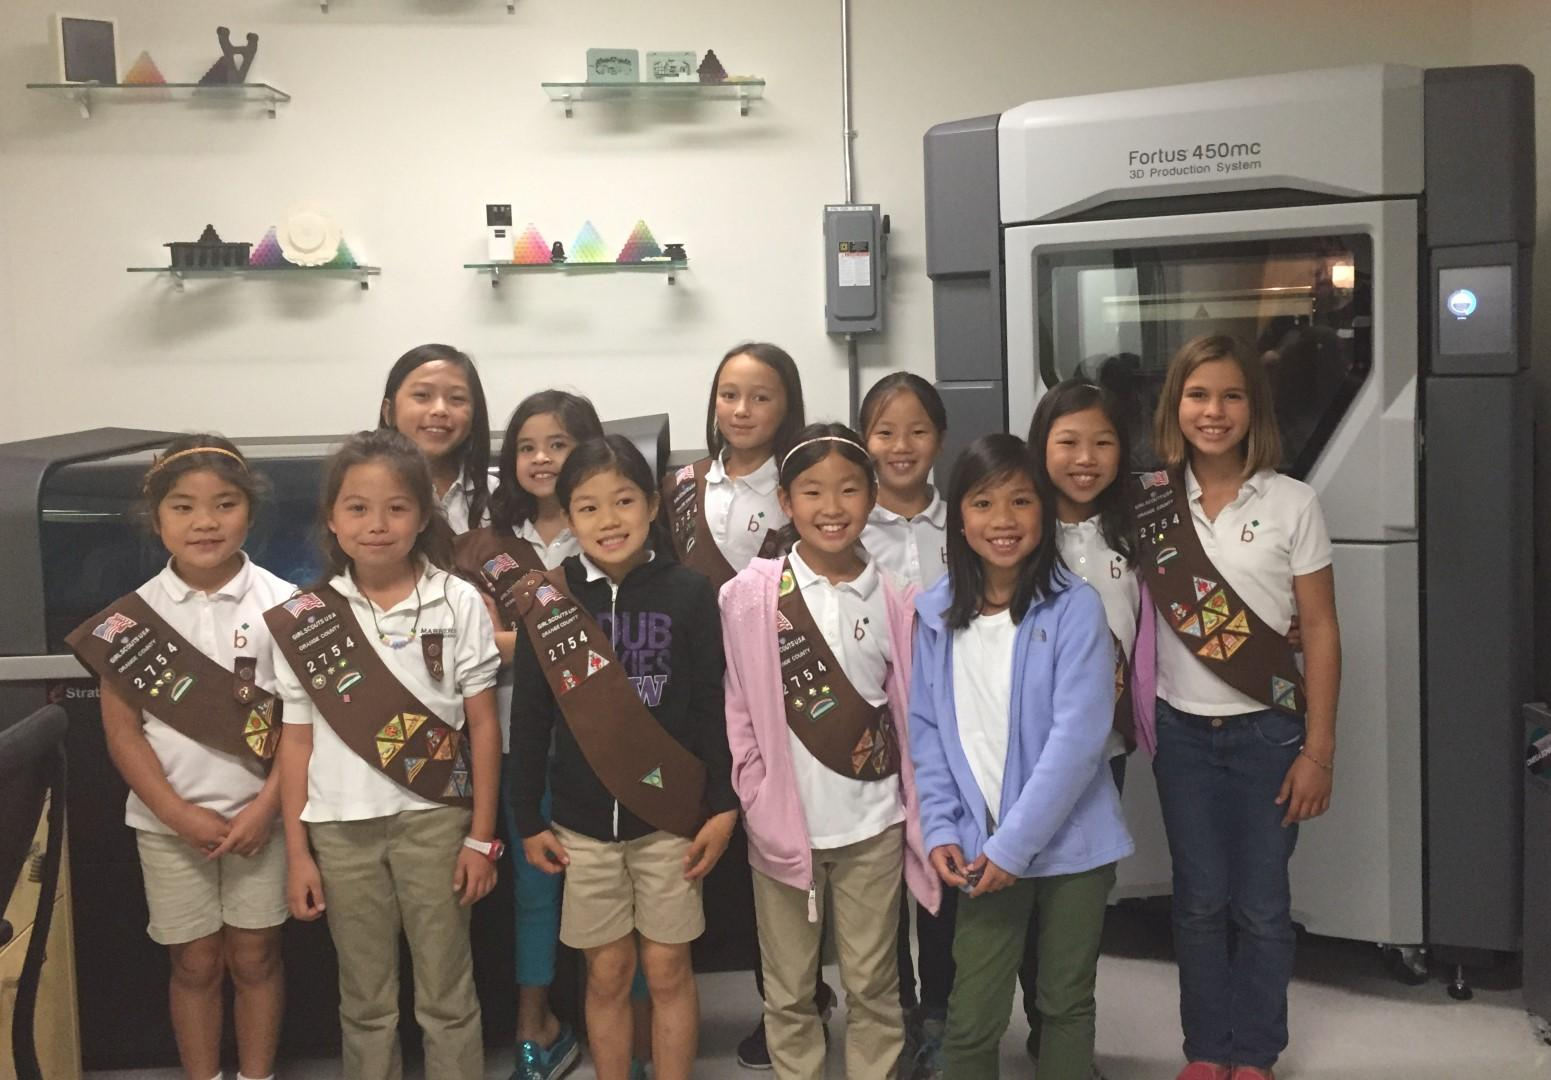 3D Printed Thin Mints Anyone California Girl Scout Troop Creates 3D Printed Plastic Cookies